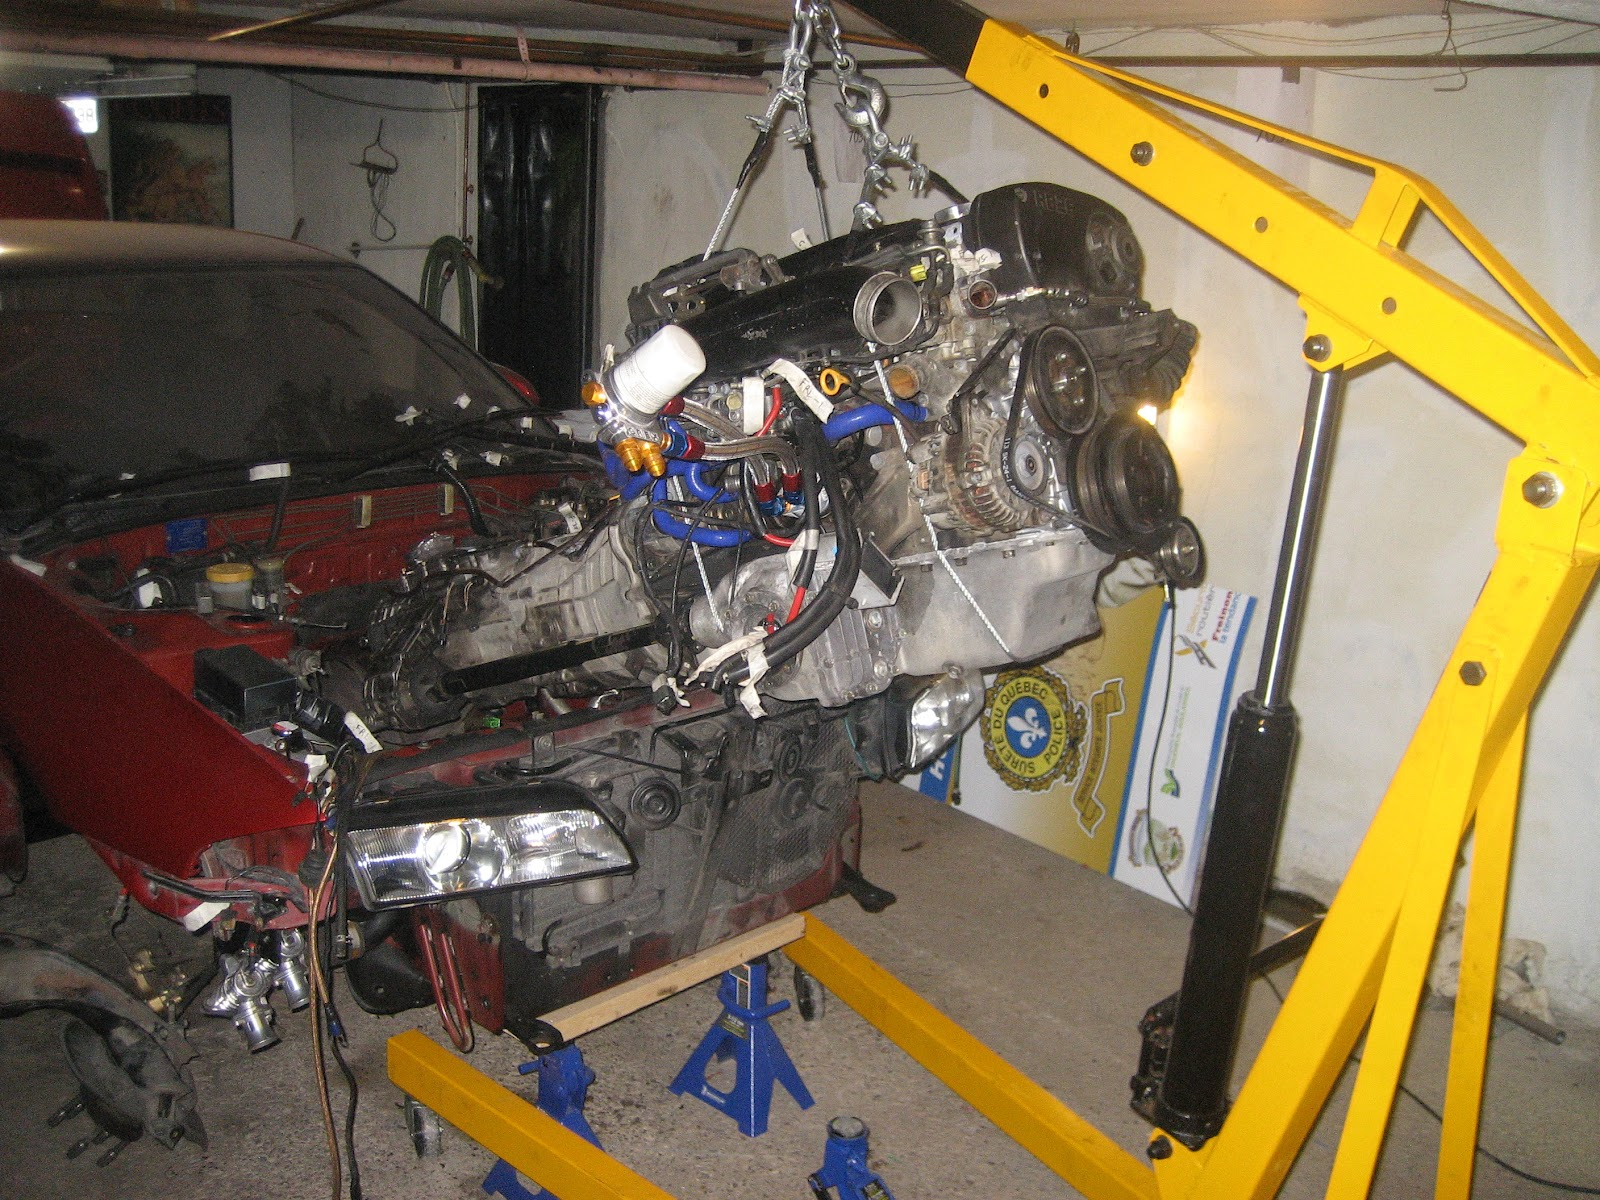 Nissan Rb26 Engine Removal Guide Pulling The Motor Out Of A Gtr Skyline R33 Wiring Diagram An From Car